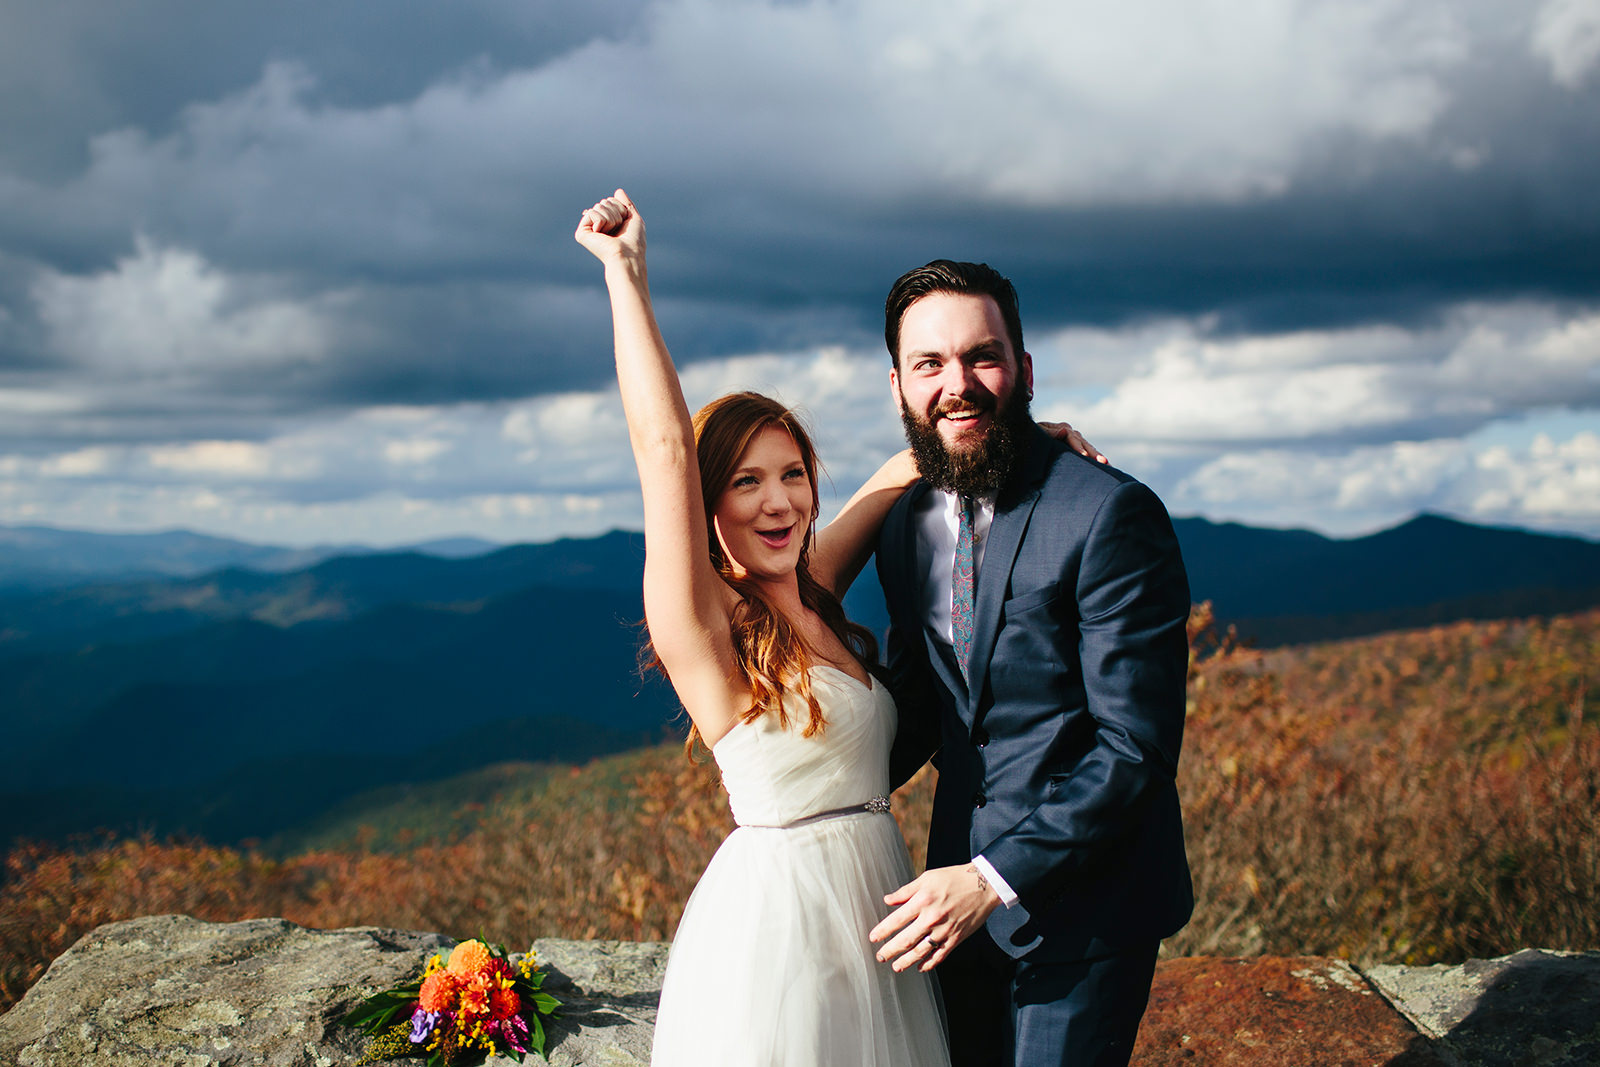 fall weddings in the mountains